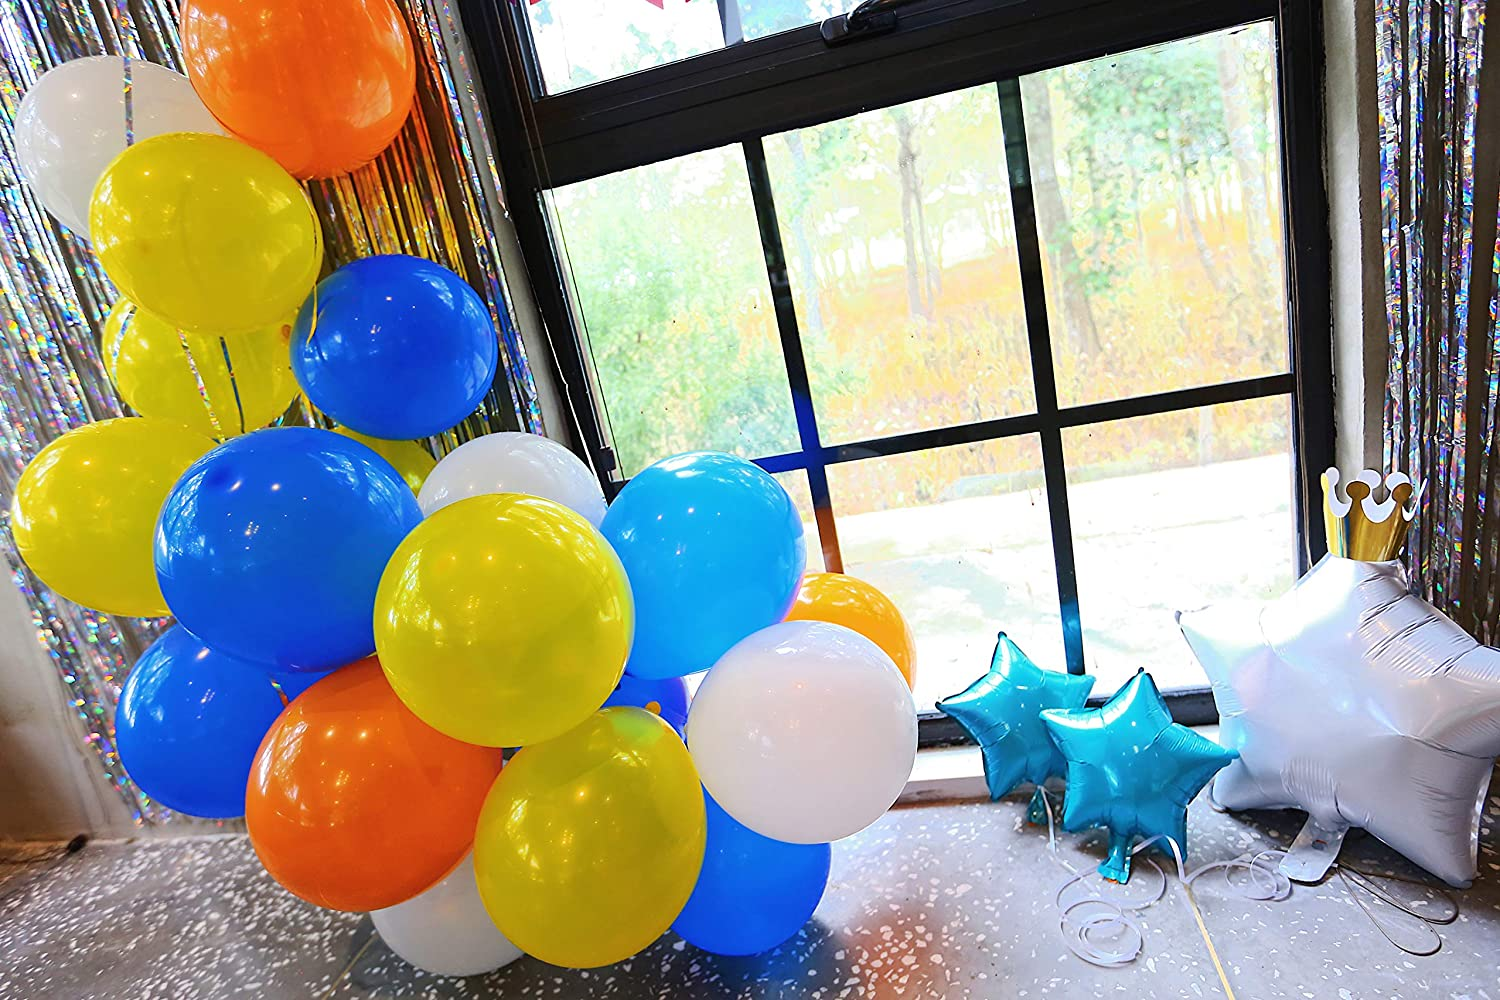 Party Supplies for Kids and Adults. ZZIIEE Birthday Party Decorations Kit Multicolor Balloons Bunting Pennant Flags Rainbow Happy Birthday Banner Slivery Metallic Tinsel Foil Fringe Curtains